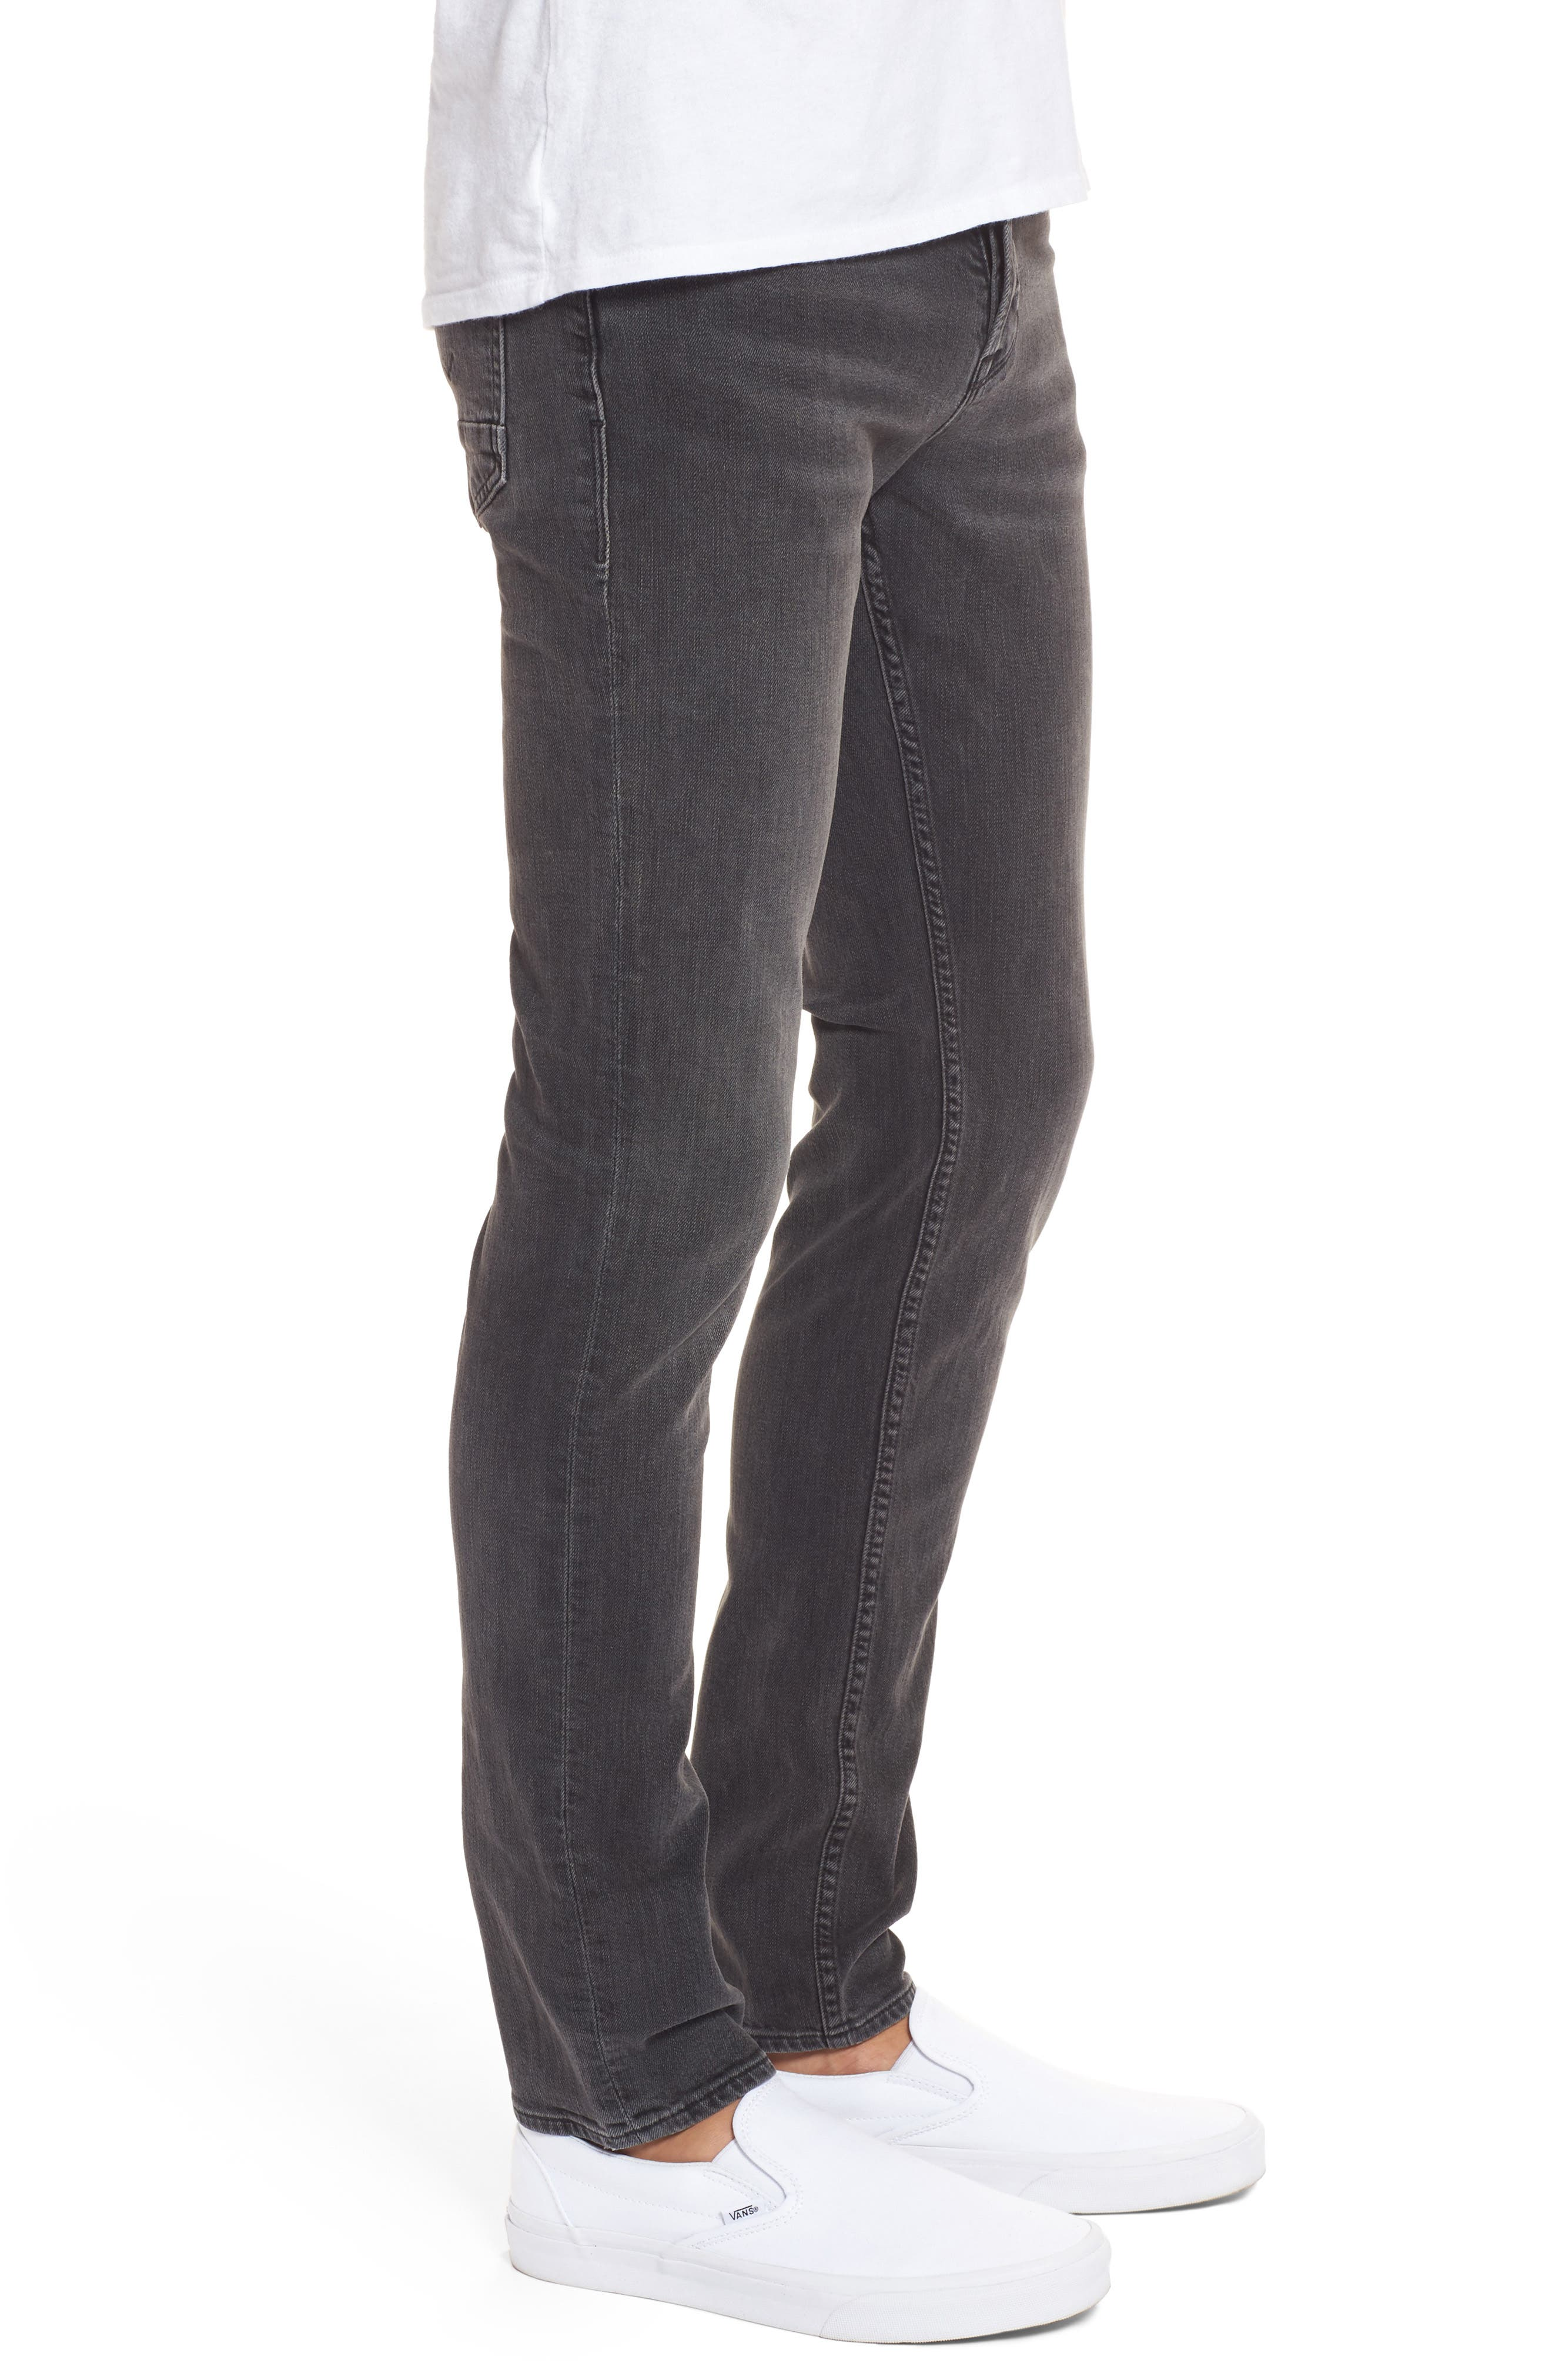 Axl Skinny Fit Jeans,                             Alternate thumbnail 3, color,                             020